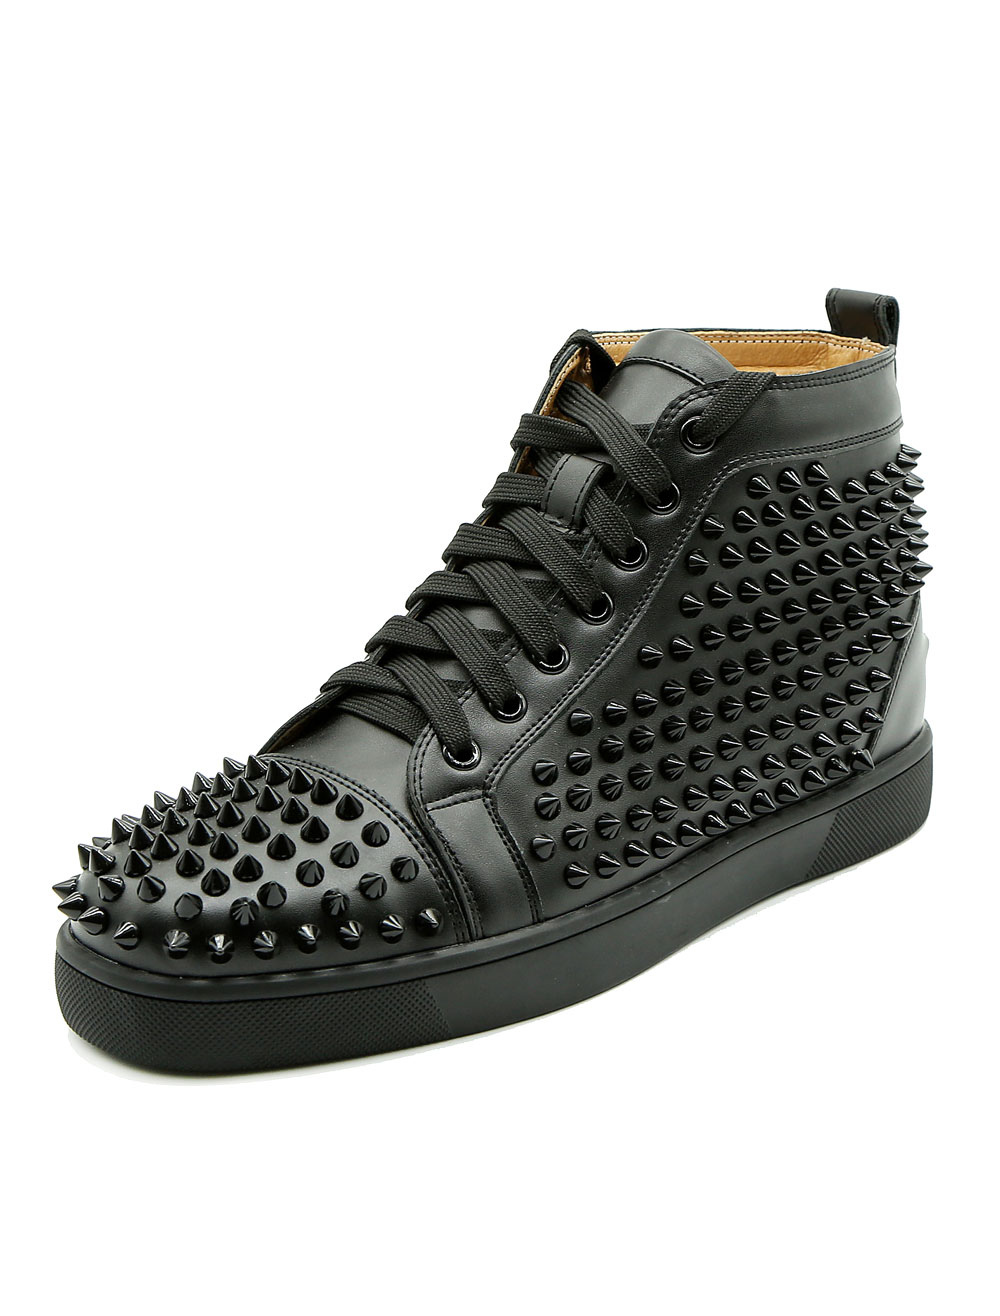 Black Skate Shoes Men's Round Toe Rivets Lace Up High Top Sneakers